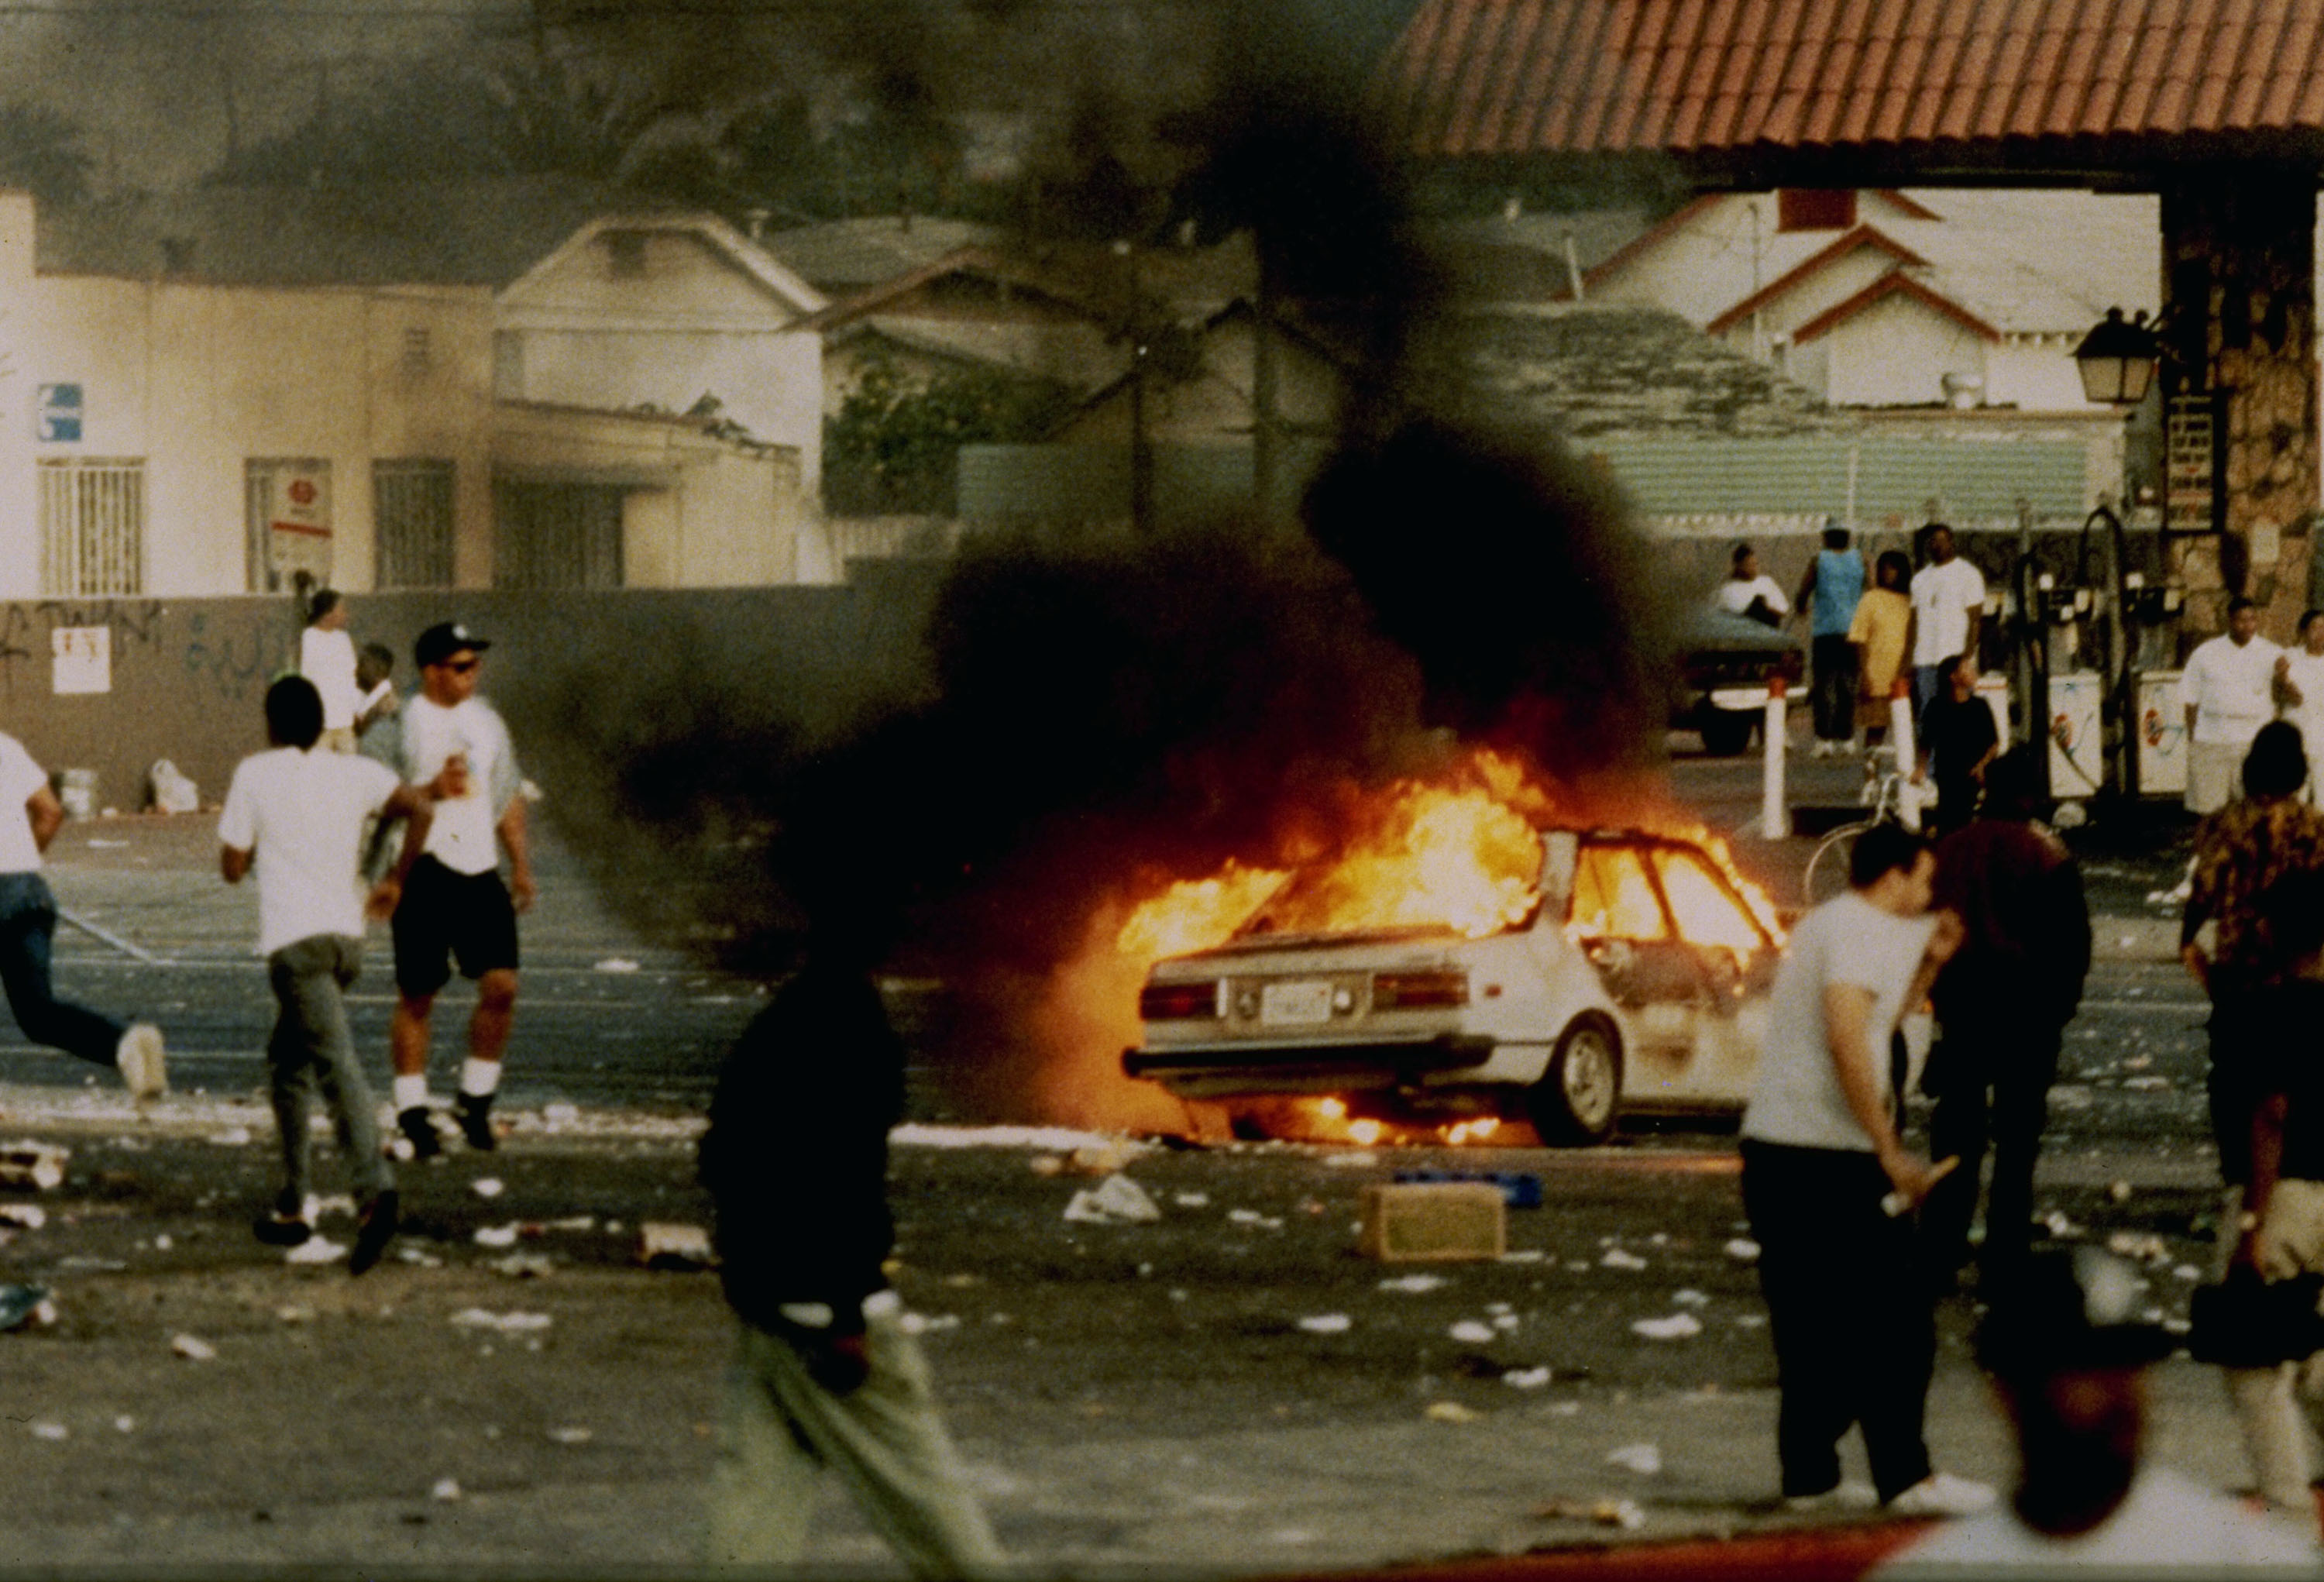 A car burns as looters take to the streets at the intersection of Florence and Normandie Avenues, April 29, 1992, This intersection is considered the flashpoint of the Los Angeles riots. (Photo by Steve Grayson/WireImage)